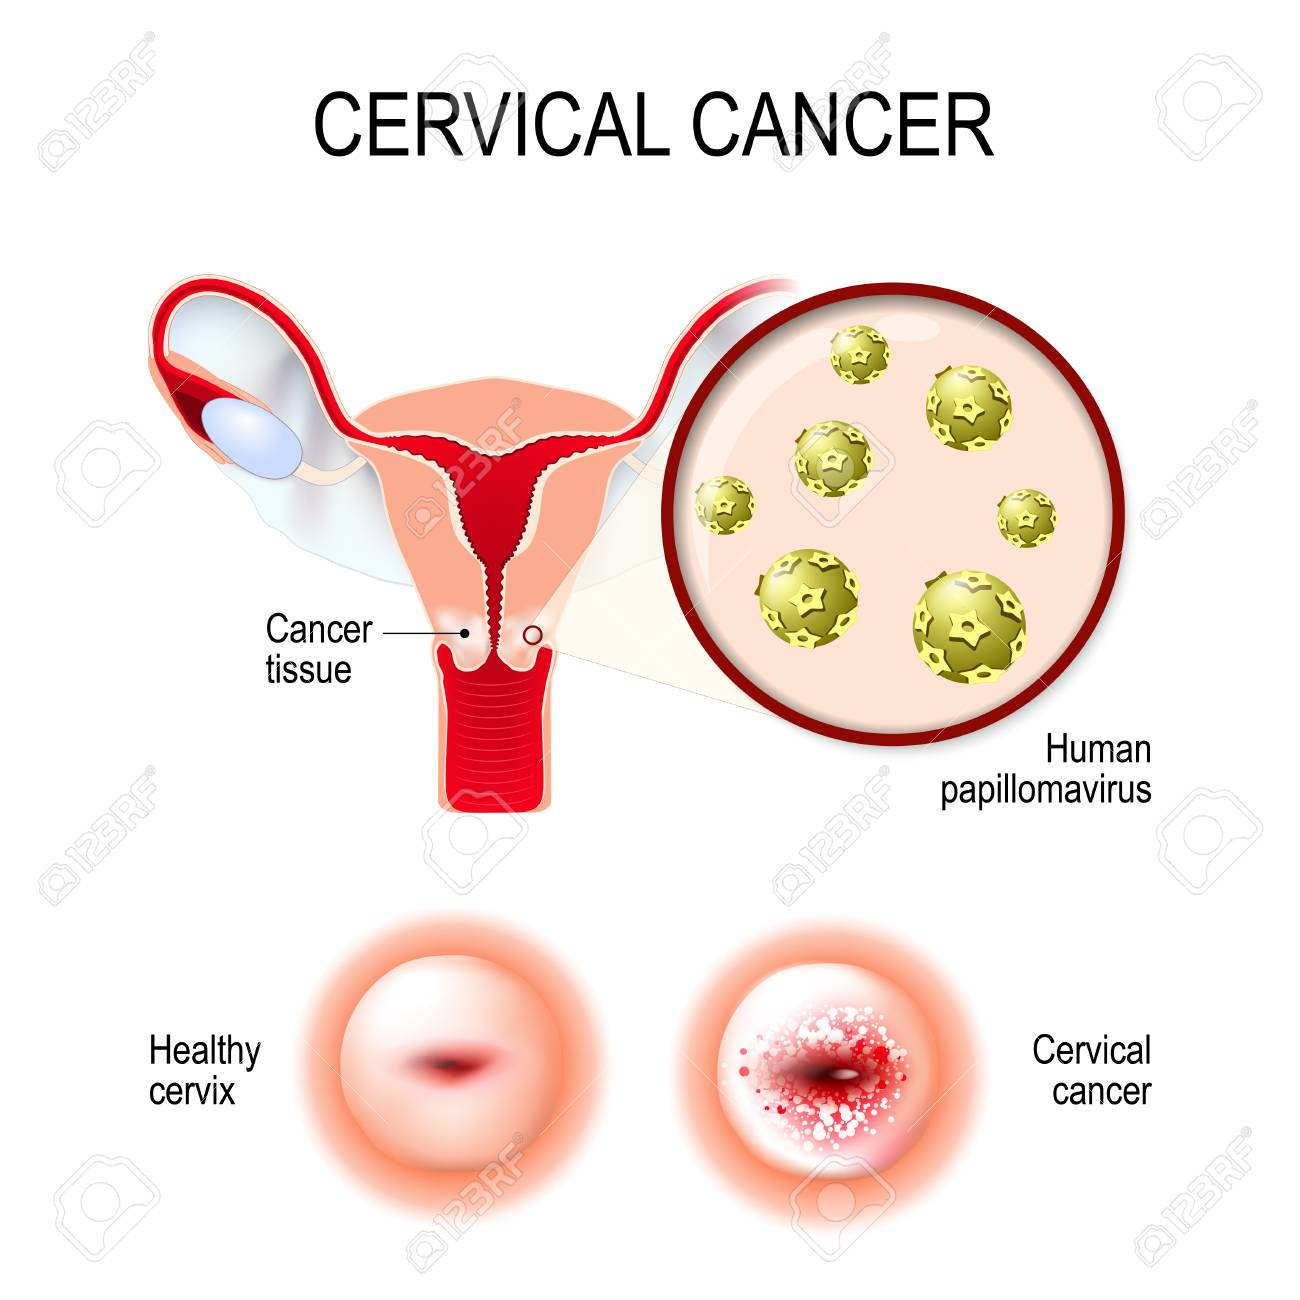 hpv in carcinoma cervix